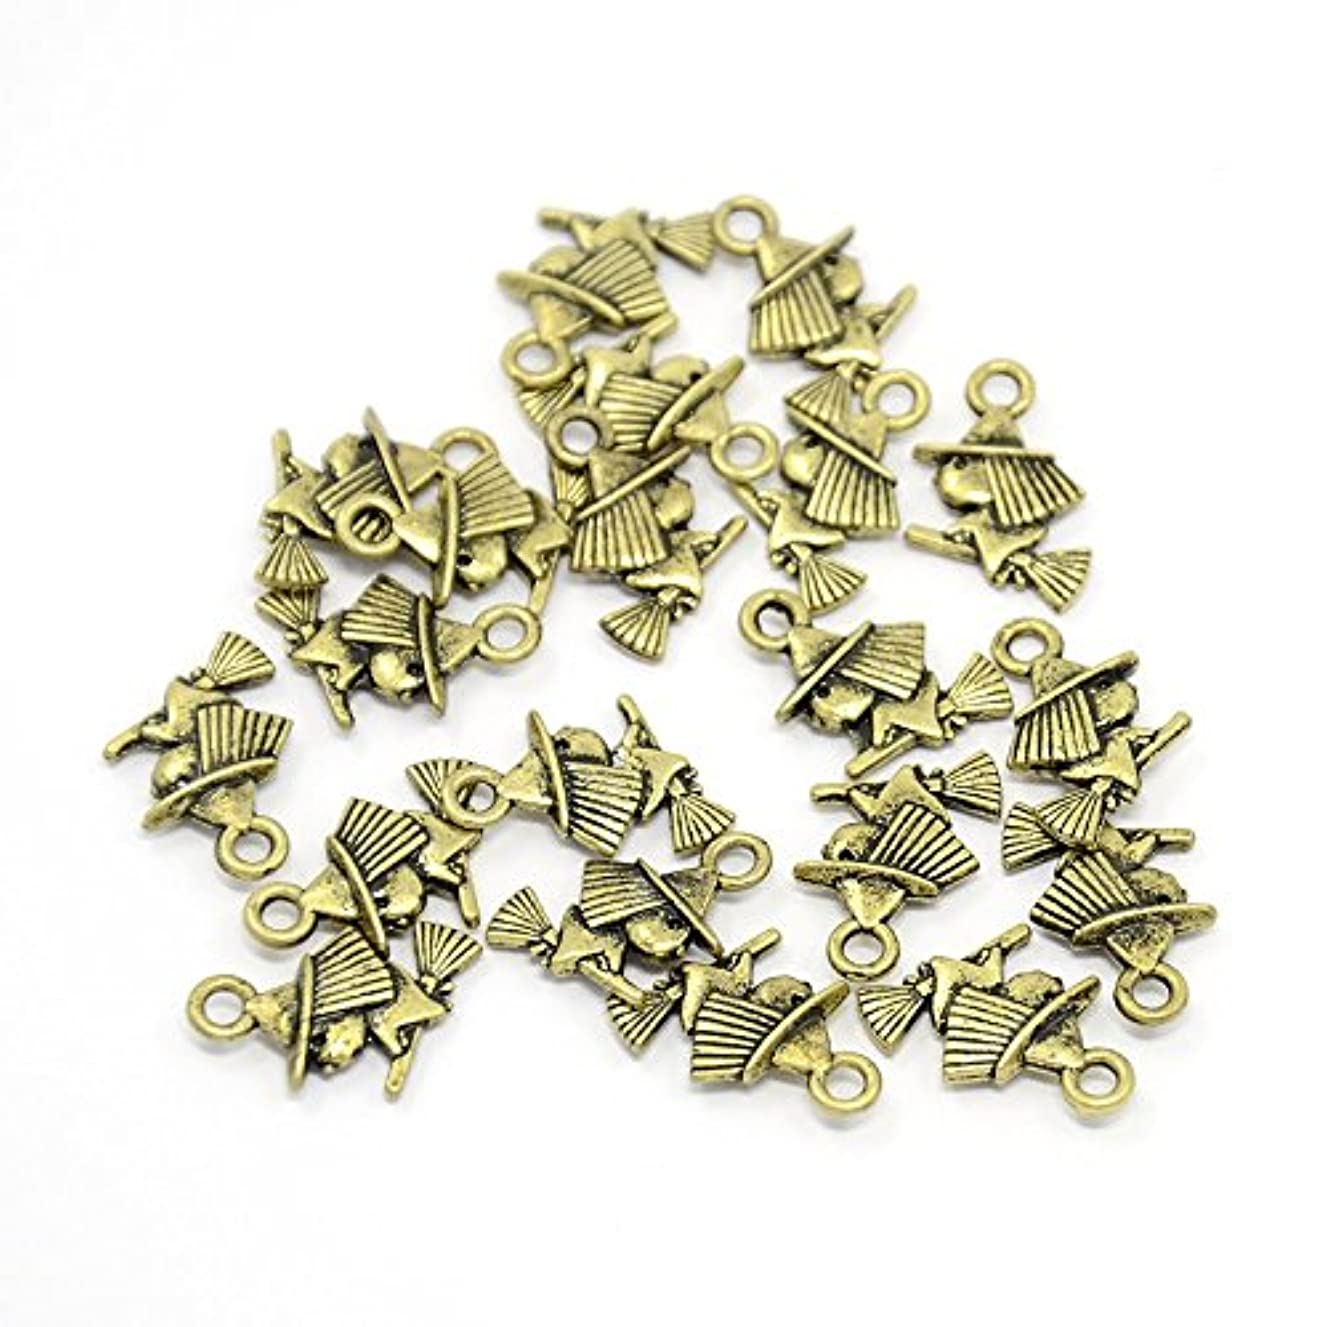 PEPPERLONELY Brand 20PC Antiqued Bronze Witch Alloy Charms Pendants 16x11mm